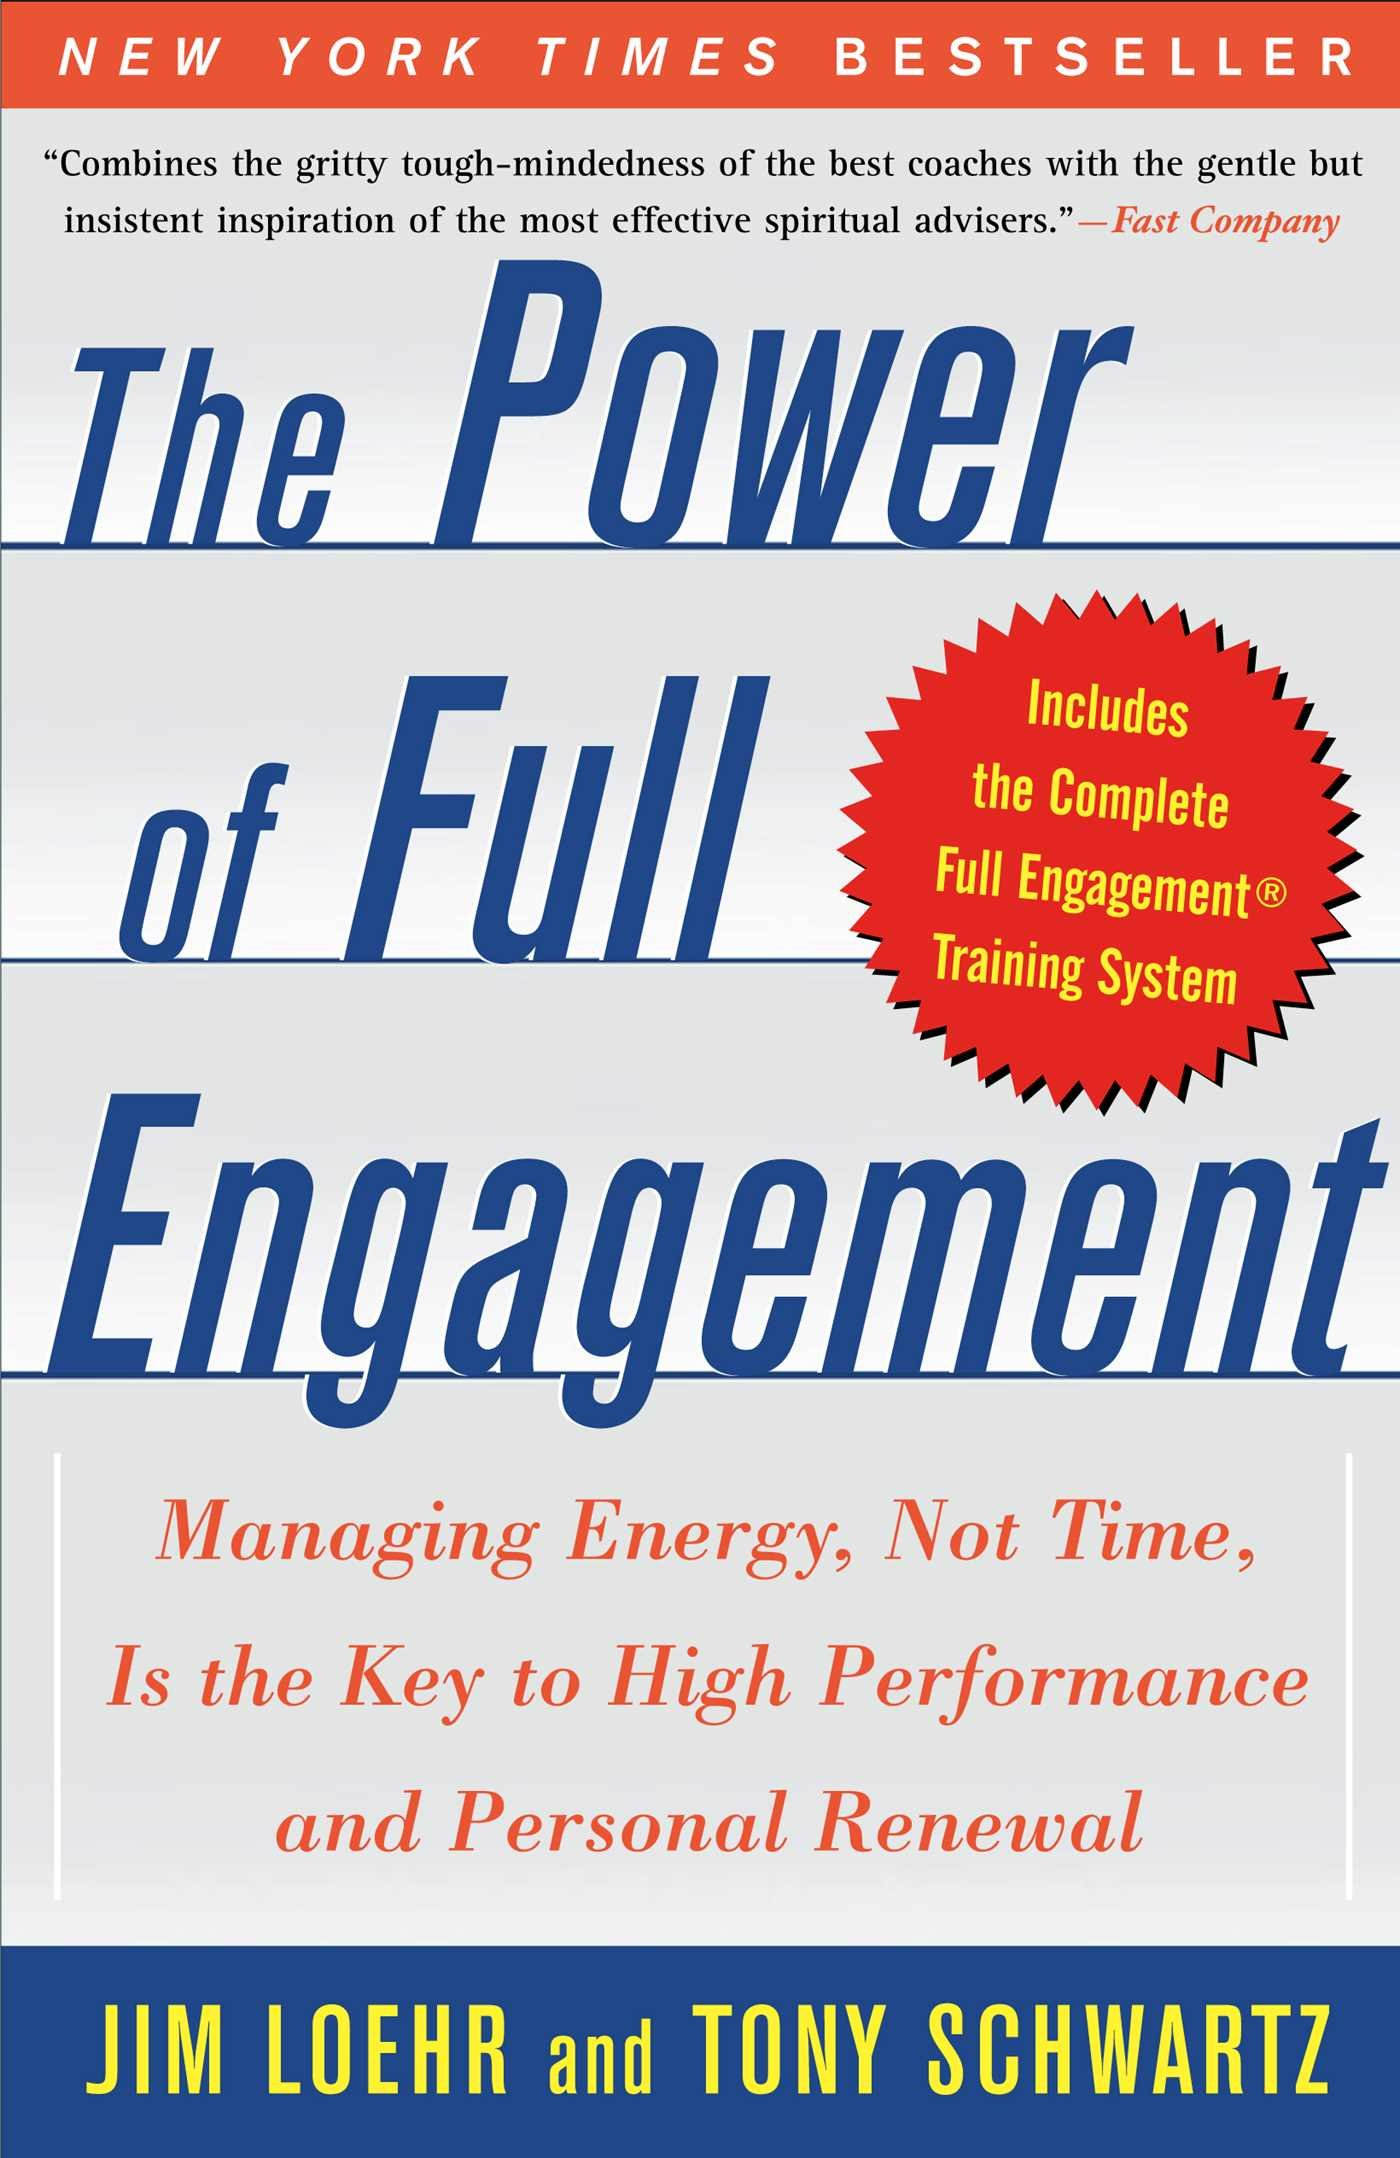 The Power of Full Engagement: Managing Energy, Not Time, Is the Key to High Performance and Personal Renewal - Jim Loehr, Tony Schwartz - quotes, rating, reviews, where to buy